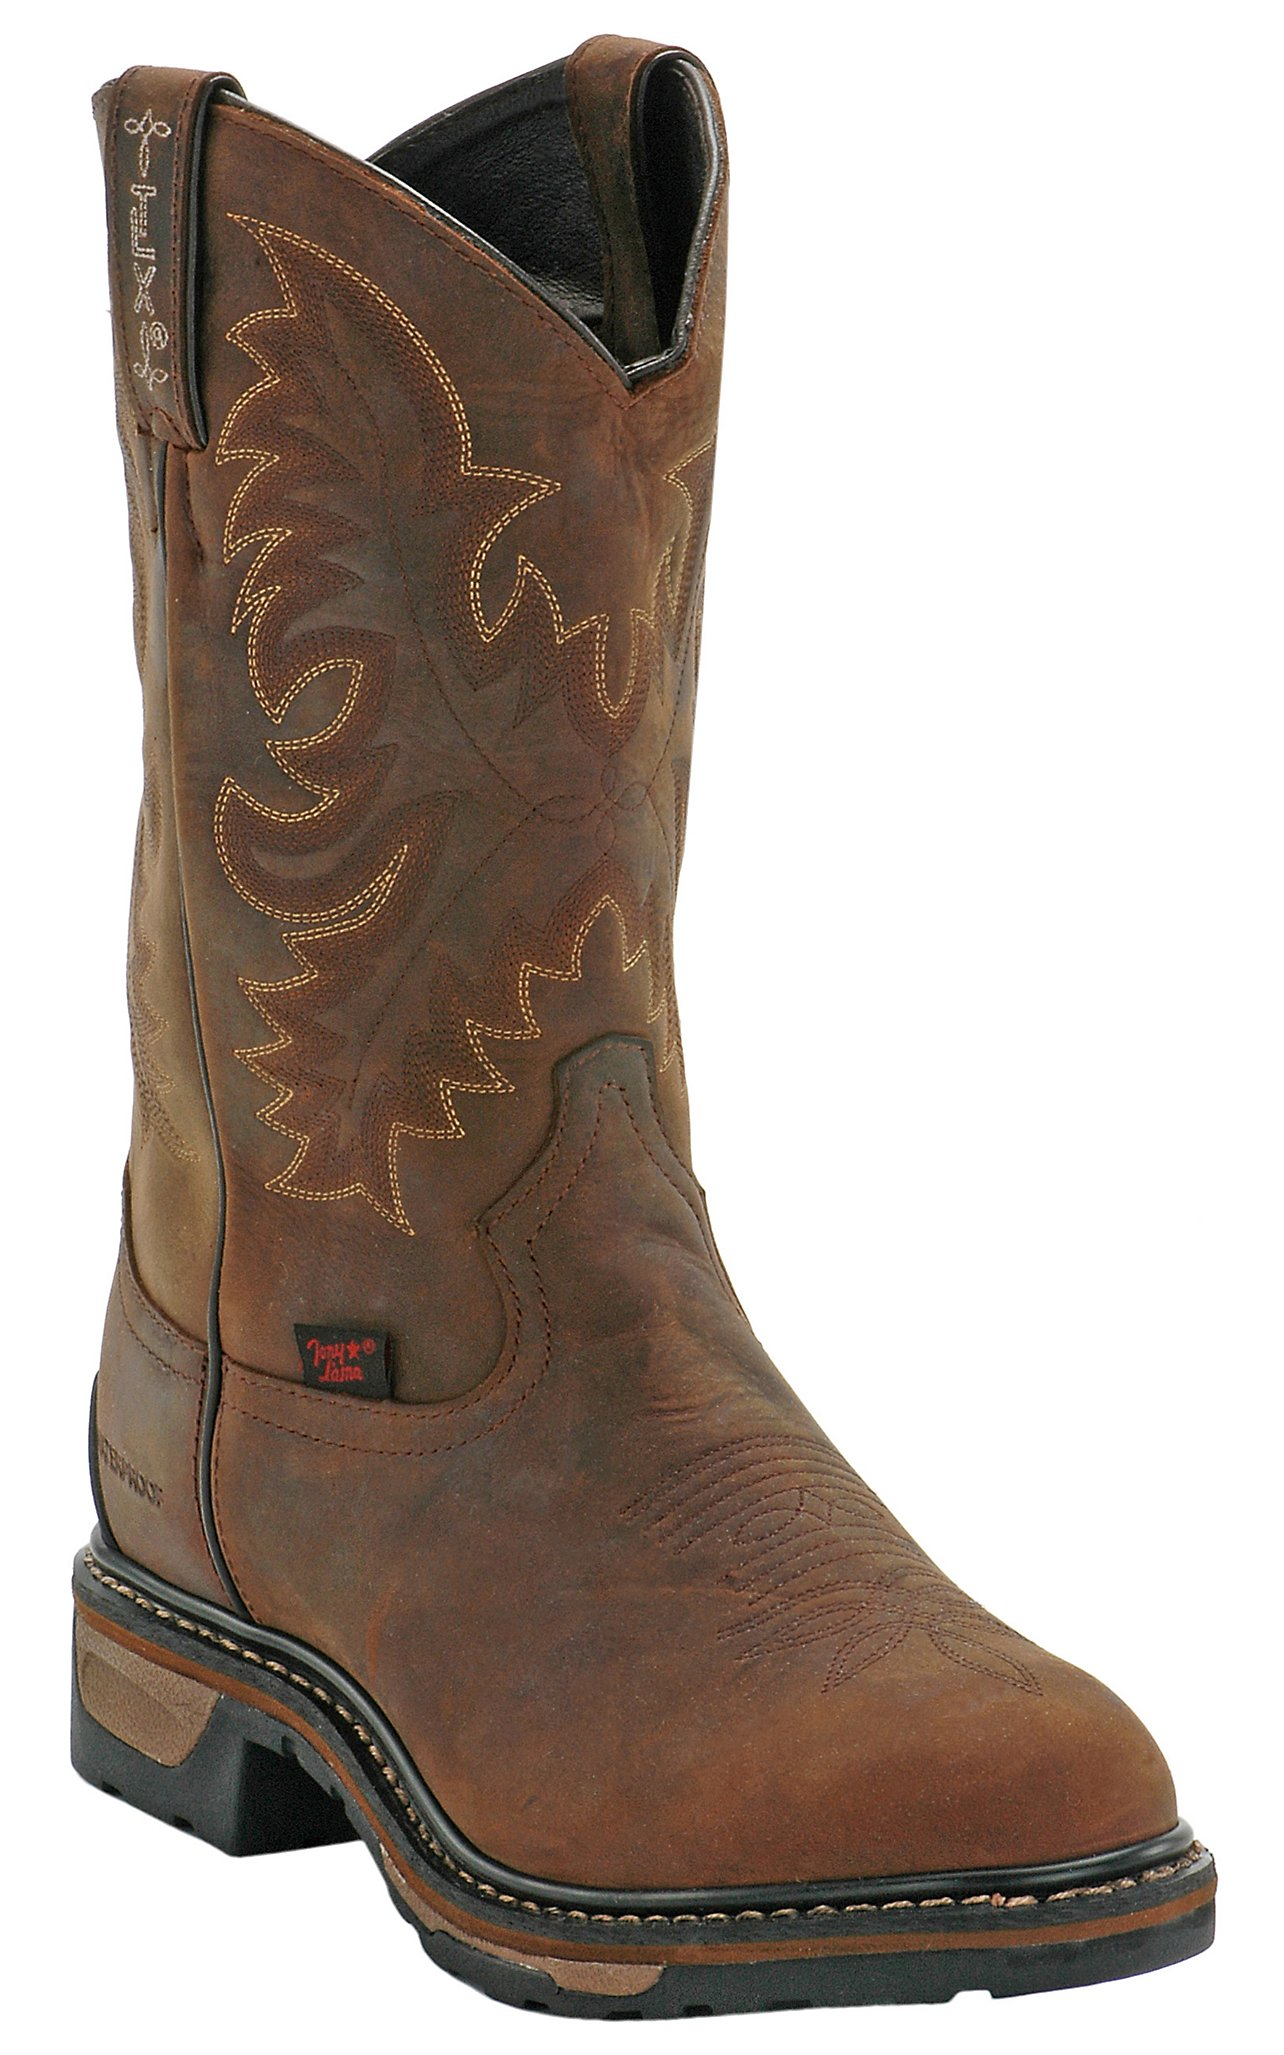 Tony Lama Mens Cheyenne Waterproof Steel Toe Work Boot | Cavender's